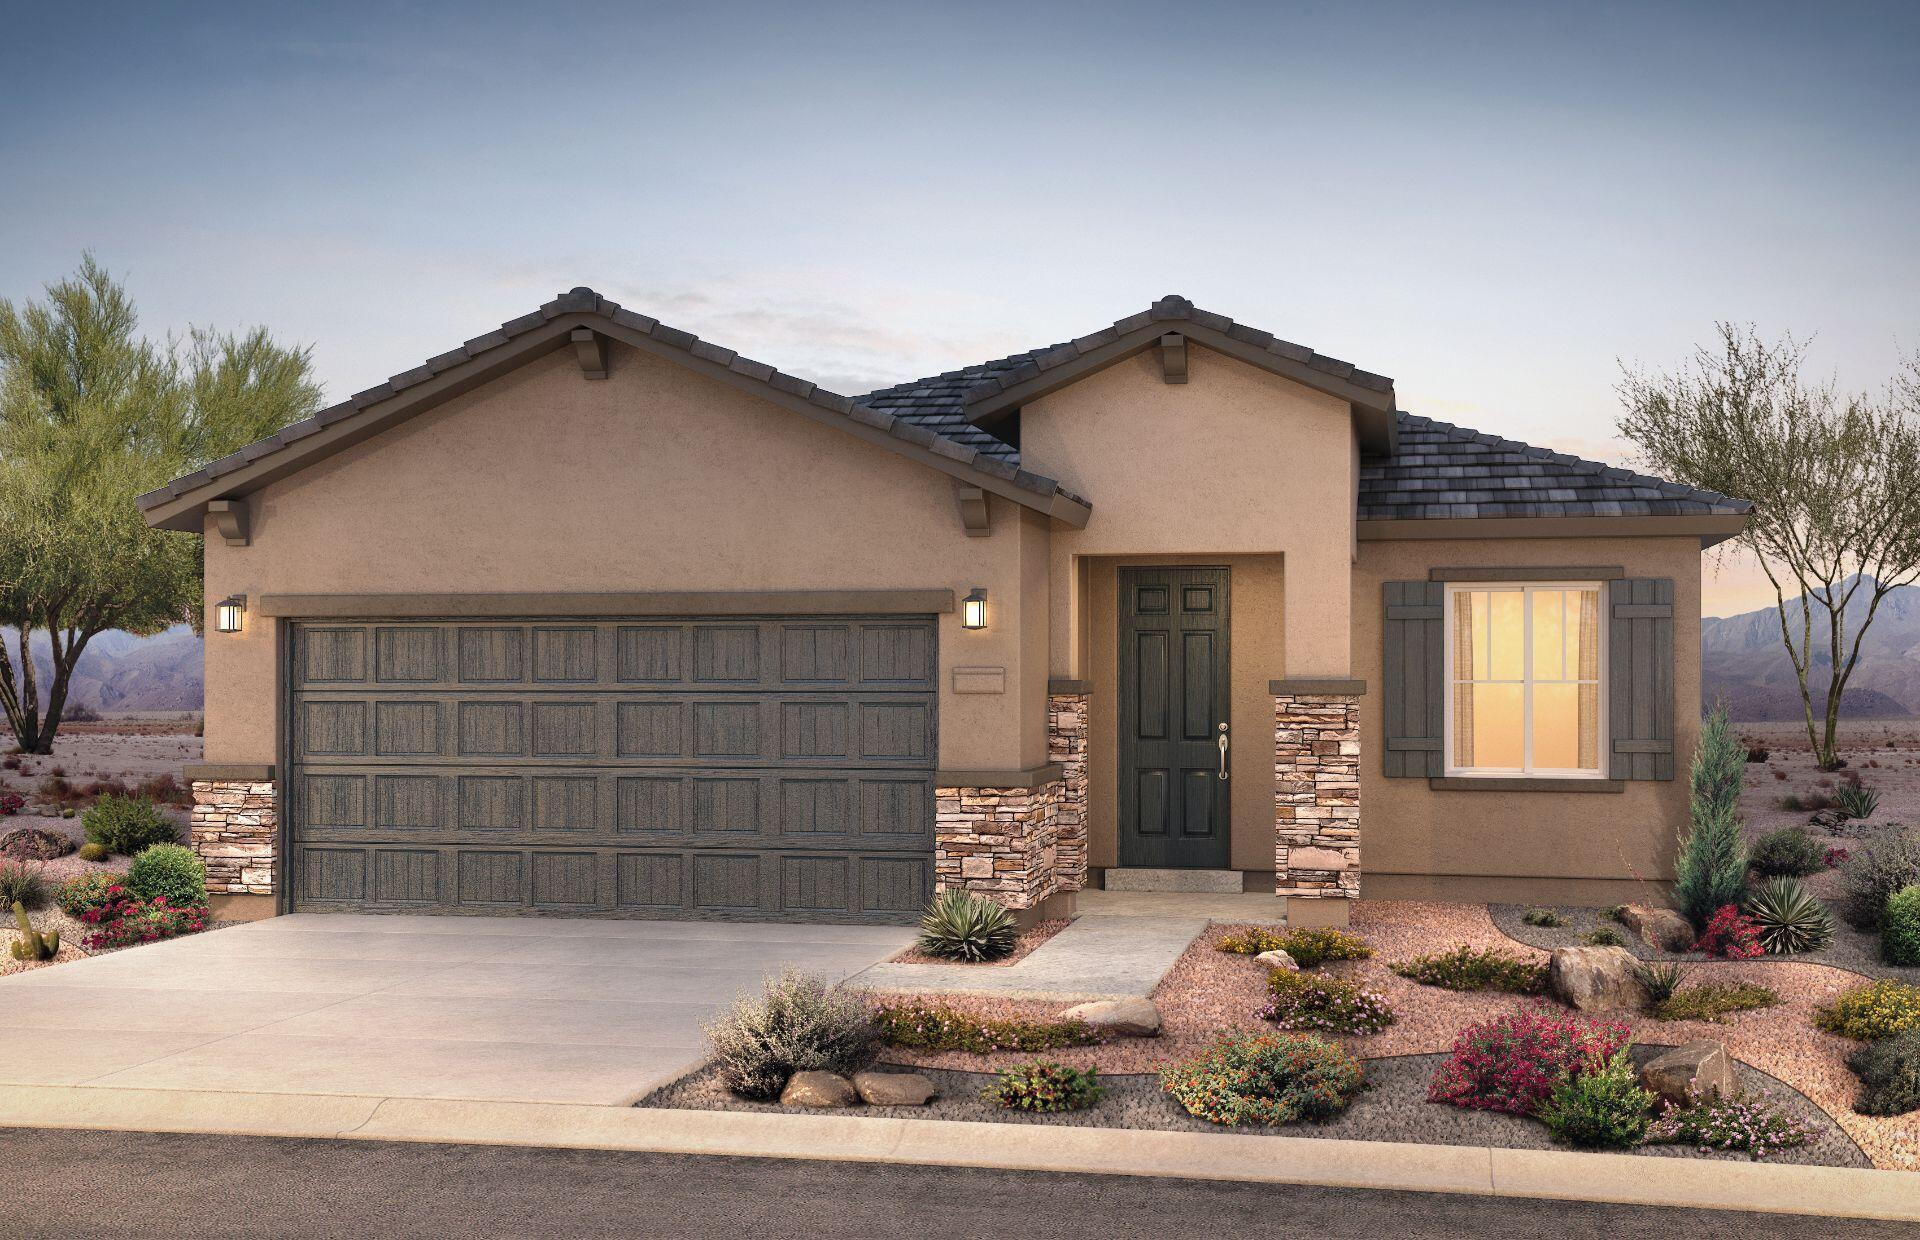 Brand new, never lived in Pulte home in our new Vallecito at Fiesta community. Enjoy brand new appliances, new carpet, new A/C, new tankless hot water heater, and so much more! This home features an extended covered patio perfect for entertaining, private office, extended garage, and 8' upgraded doors. Relax in your spacious master's suite that boasts a bay window and a large shower with a seat. Enjoy a designer kitchen with sleek white cabinets, soft close cabinet doors, and stunning granite countertops!